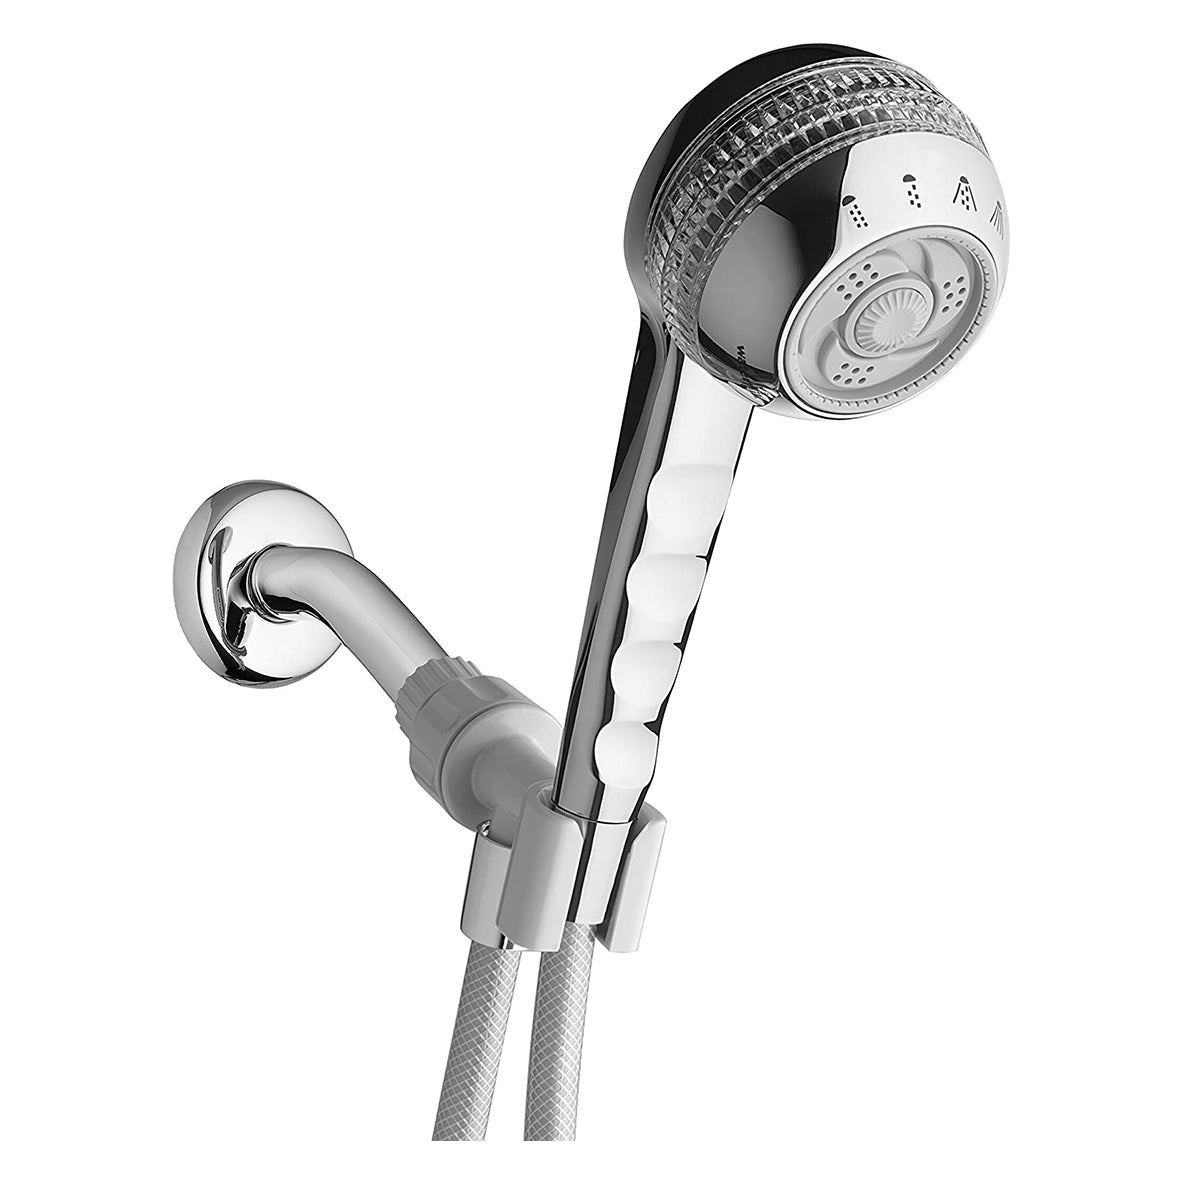 The Best High Pressure Shower Heads to Upgrade Your Shower